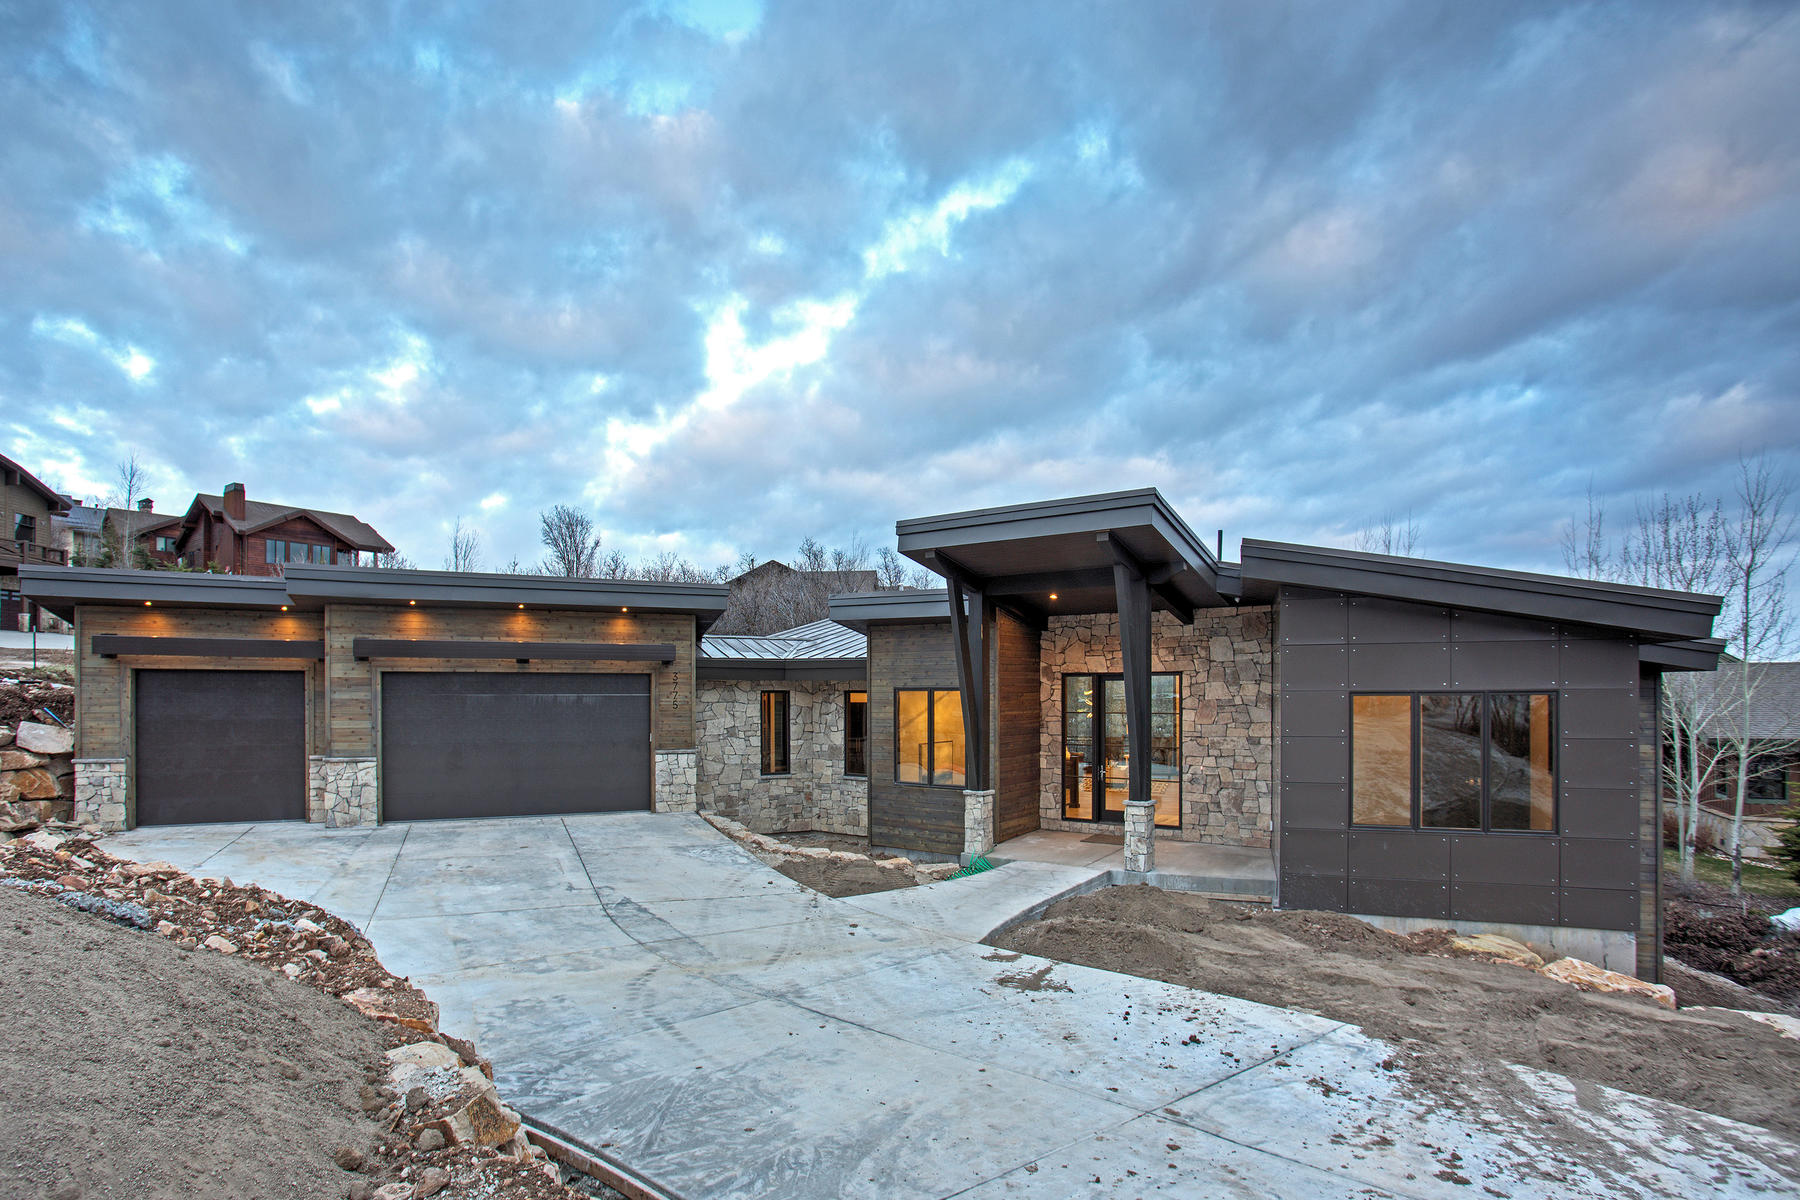 Single Family Home for Sale at New Contemporary Construction in Royal Oaks at Deer Valley 3775 Sun Ridge Dr Park City, Utah, 84060 United States